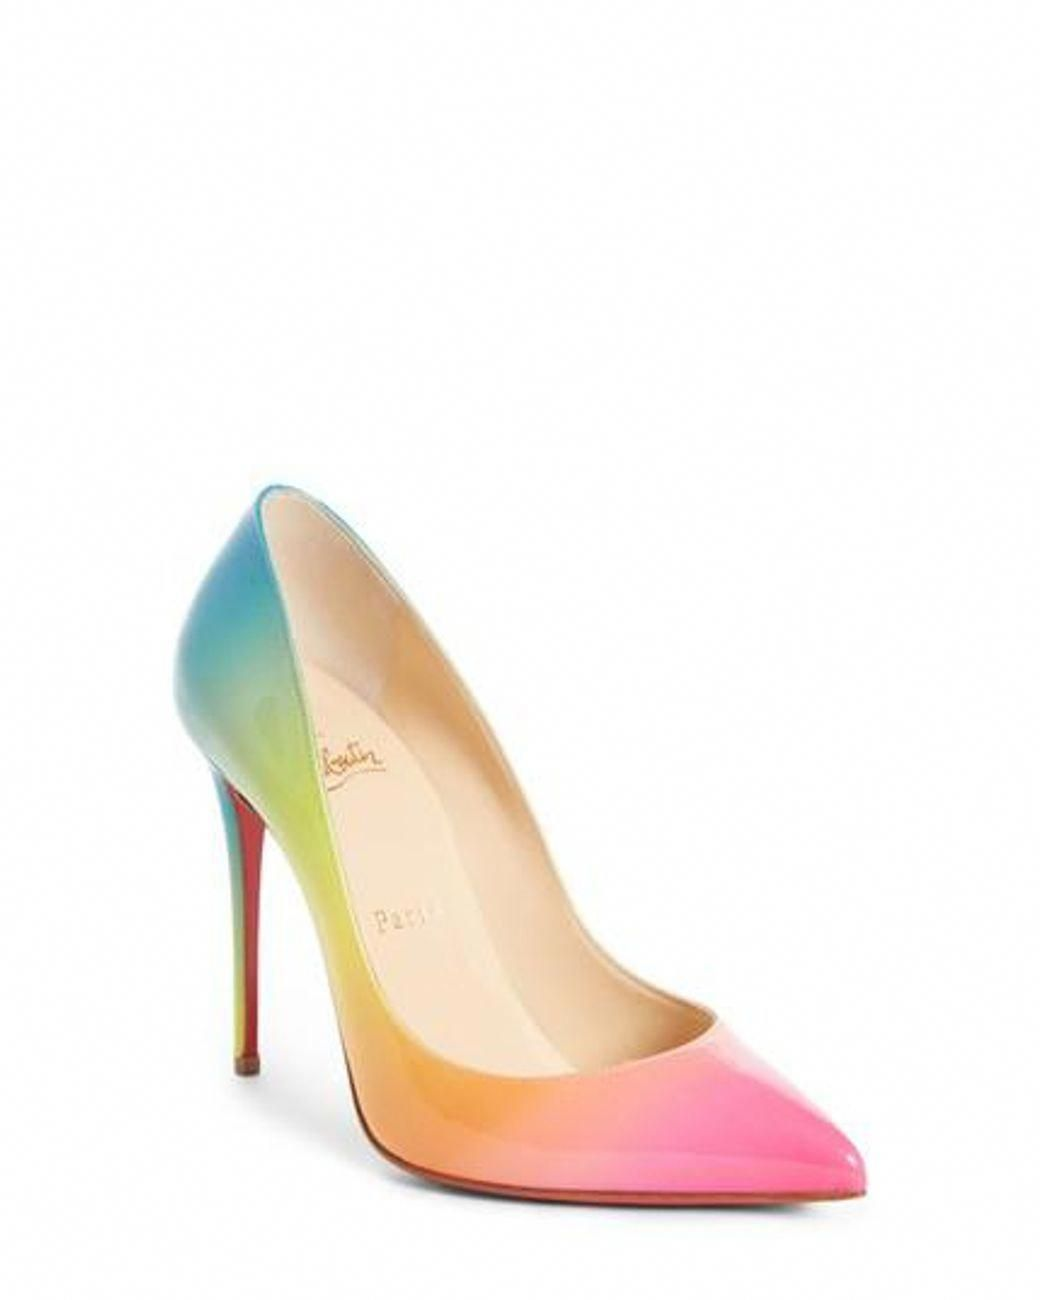 531900c0adc Christian Louboutin - Multicolor Rainbow Pigalle Follies Pump - Lyst   ChristianLouboutin